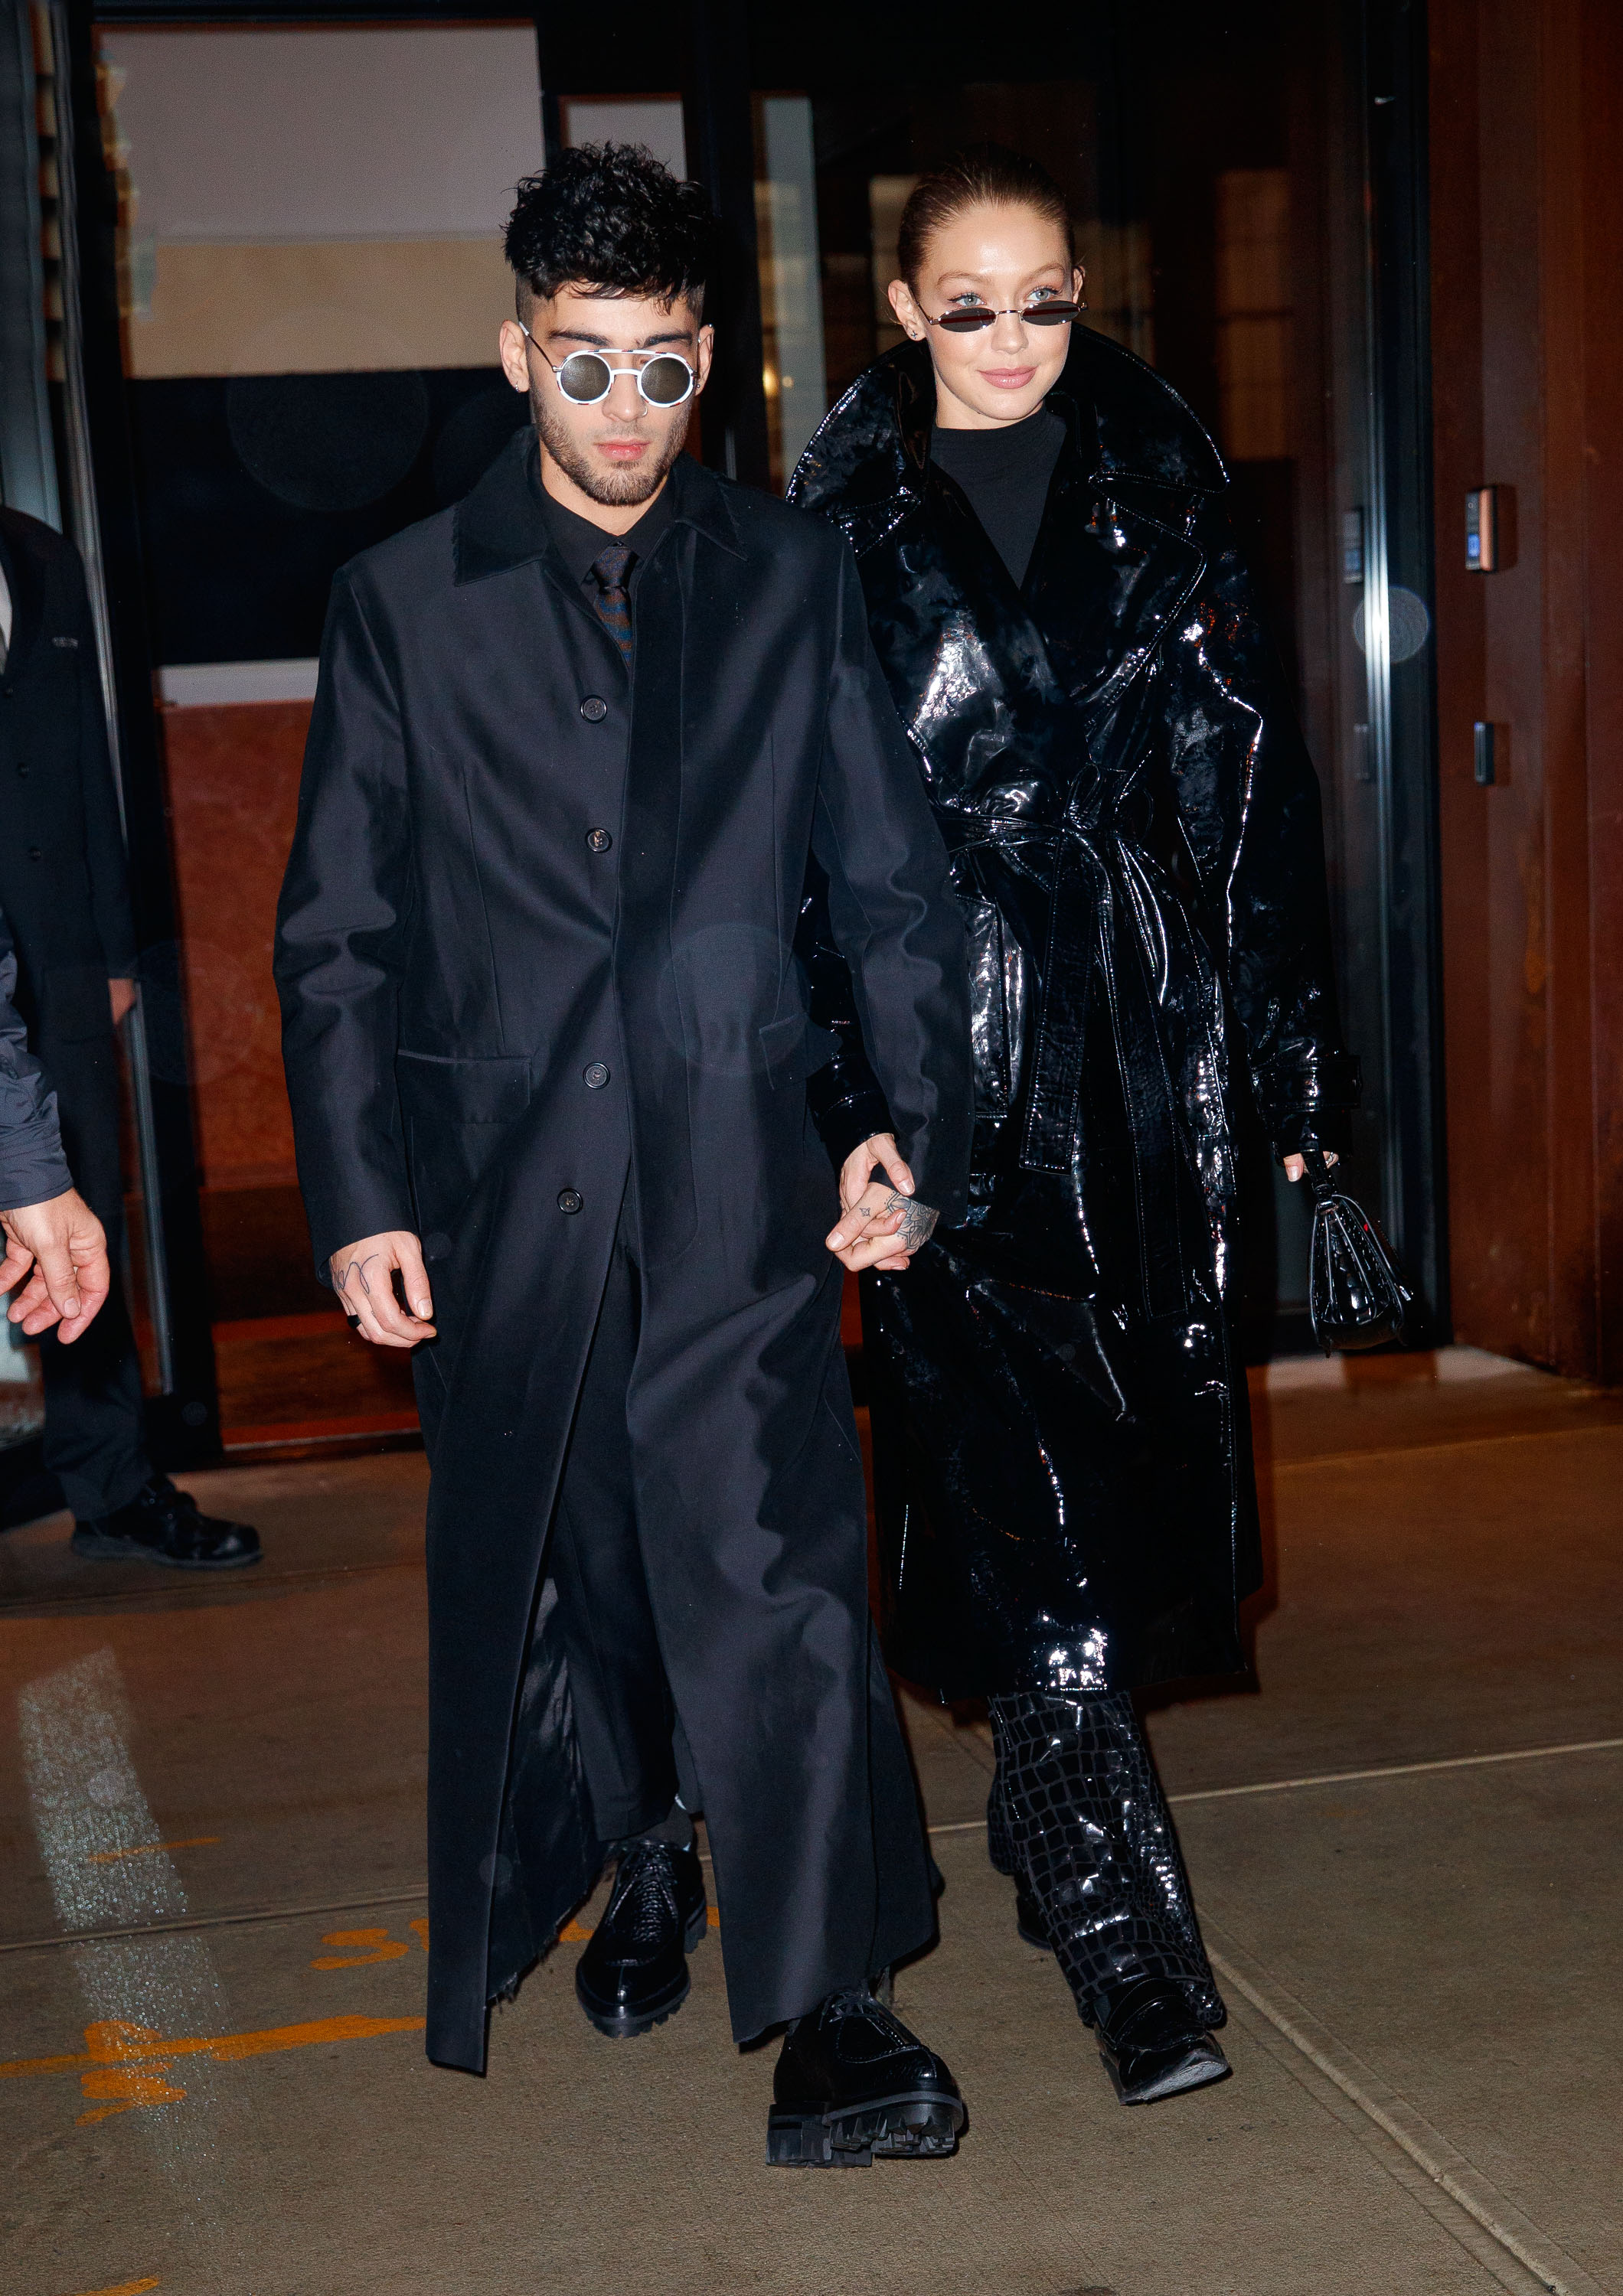 The Insta generation's model and musician power couple, Gigi Hadid and Zayn Malik, made a strong case for couple dressing in New York City earlier this week.<br /> <br /> The pair, in town to celebrate Malik's 25th birthday, stepped out in all-black twinning looks that could very well have been inspired by sci-fi flick, <em>The Matrix.</em><br /> <br /> Rugged up in black trench coats with matching pants and micro sunglasses the duo looked dressed to rebel against the power of computers with Keanu Reeves. <br /> <br /> Malik channelled Neo's style with a Dsquared2 coat, Dior Homme sunglasses, Givenchy trousers and Prada boots. His supermodel girlfriend opted for a glossy PVC coat by Helmut Lang with black patent pants and matching glasses.<br /> <br /> Zigi, who have been together since 2015, have long had a penchant for couple dressing and even posed for the August 2017 cover of <em>US Vogue</em> where they spoke about their love of 'gender neutral dressing'.<br /> <br /> Whether they're Hollywood superstars, sport stars or fashion industry powerhouses, many style-savvy A-list couples haven't been afraid to make a splash in his-and-her outfits.<br /> <br /> Click through to see the A-list couples who have suited up in style.